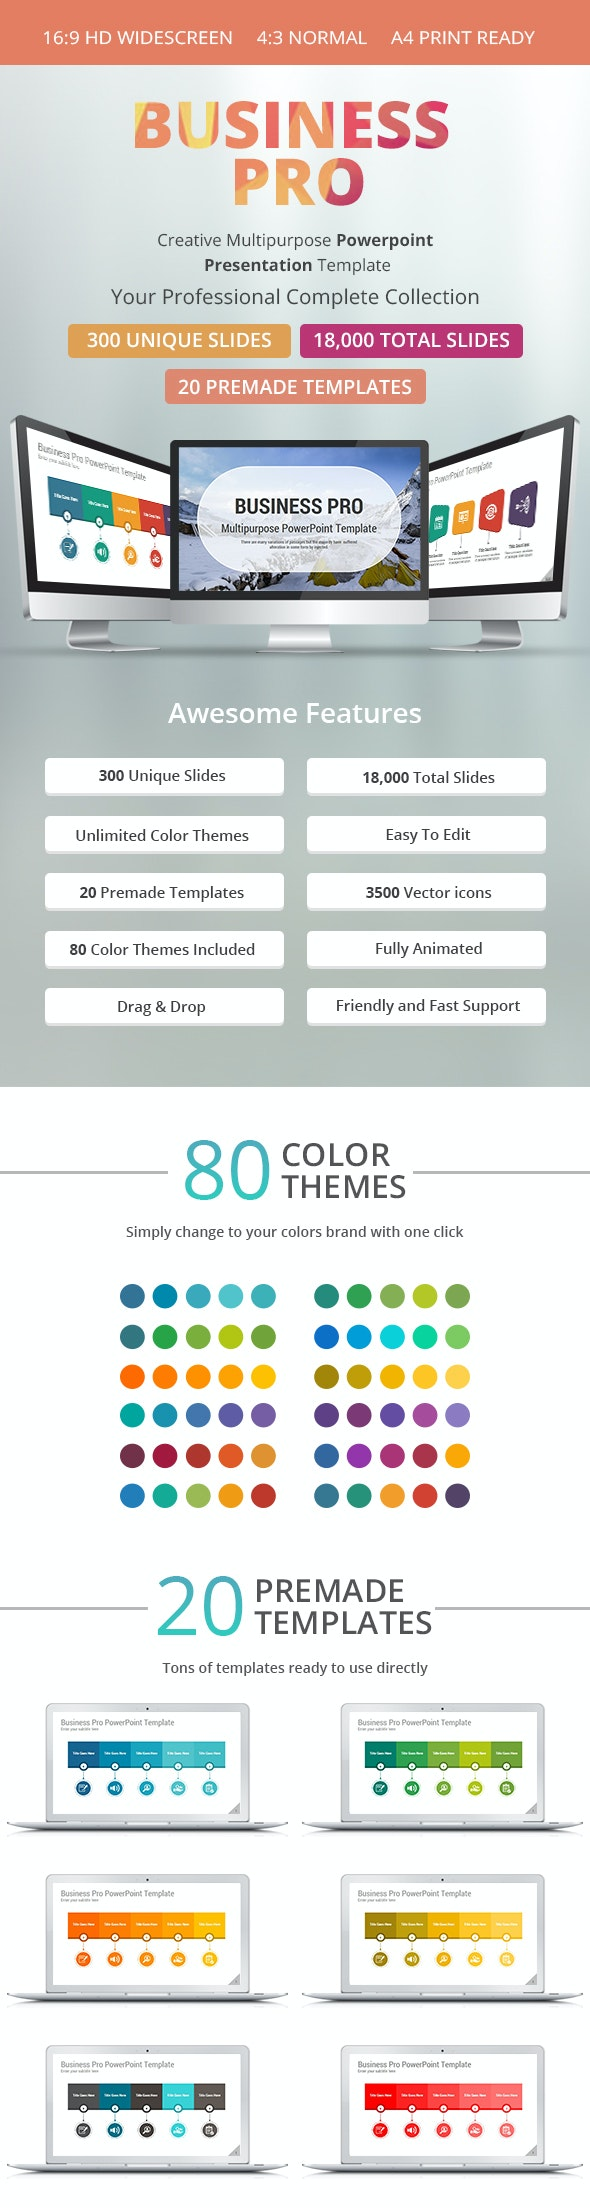 Business Pro PowerPoint Presentation Template - Business PowerPoint Templates